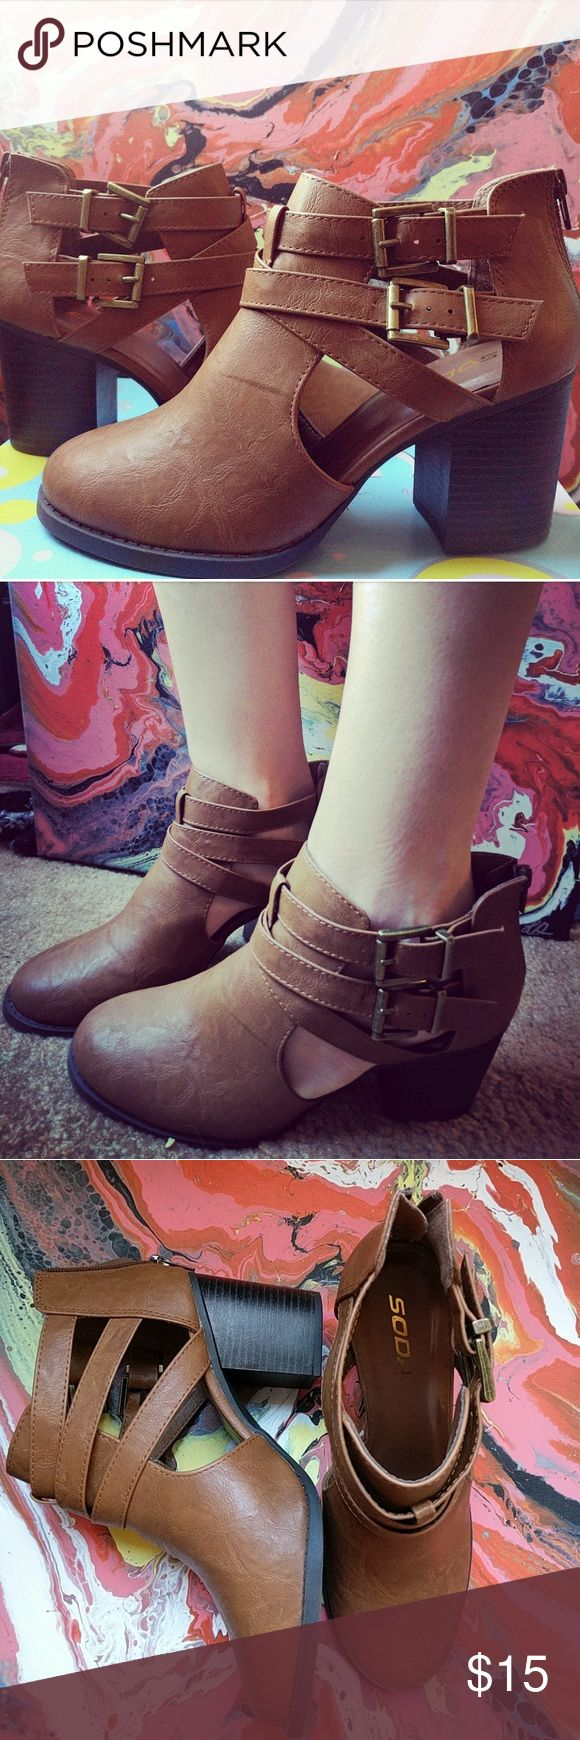 Brand New Soda Shoes Brown leather booties Tilly's Shoes Ankle Boots & Booties